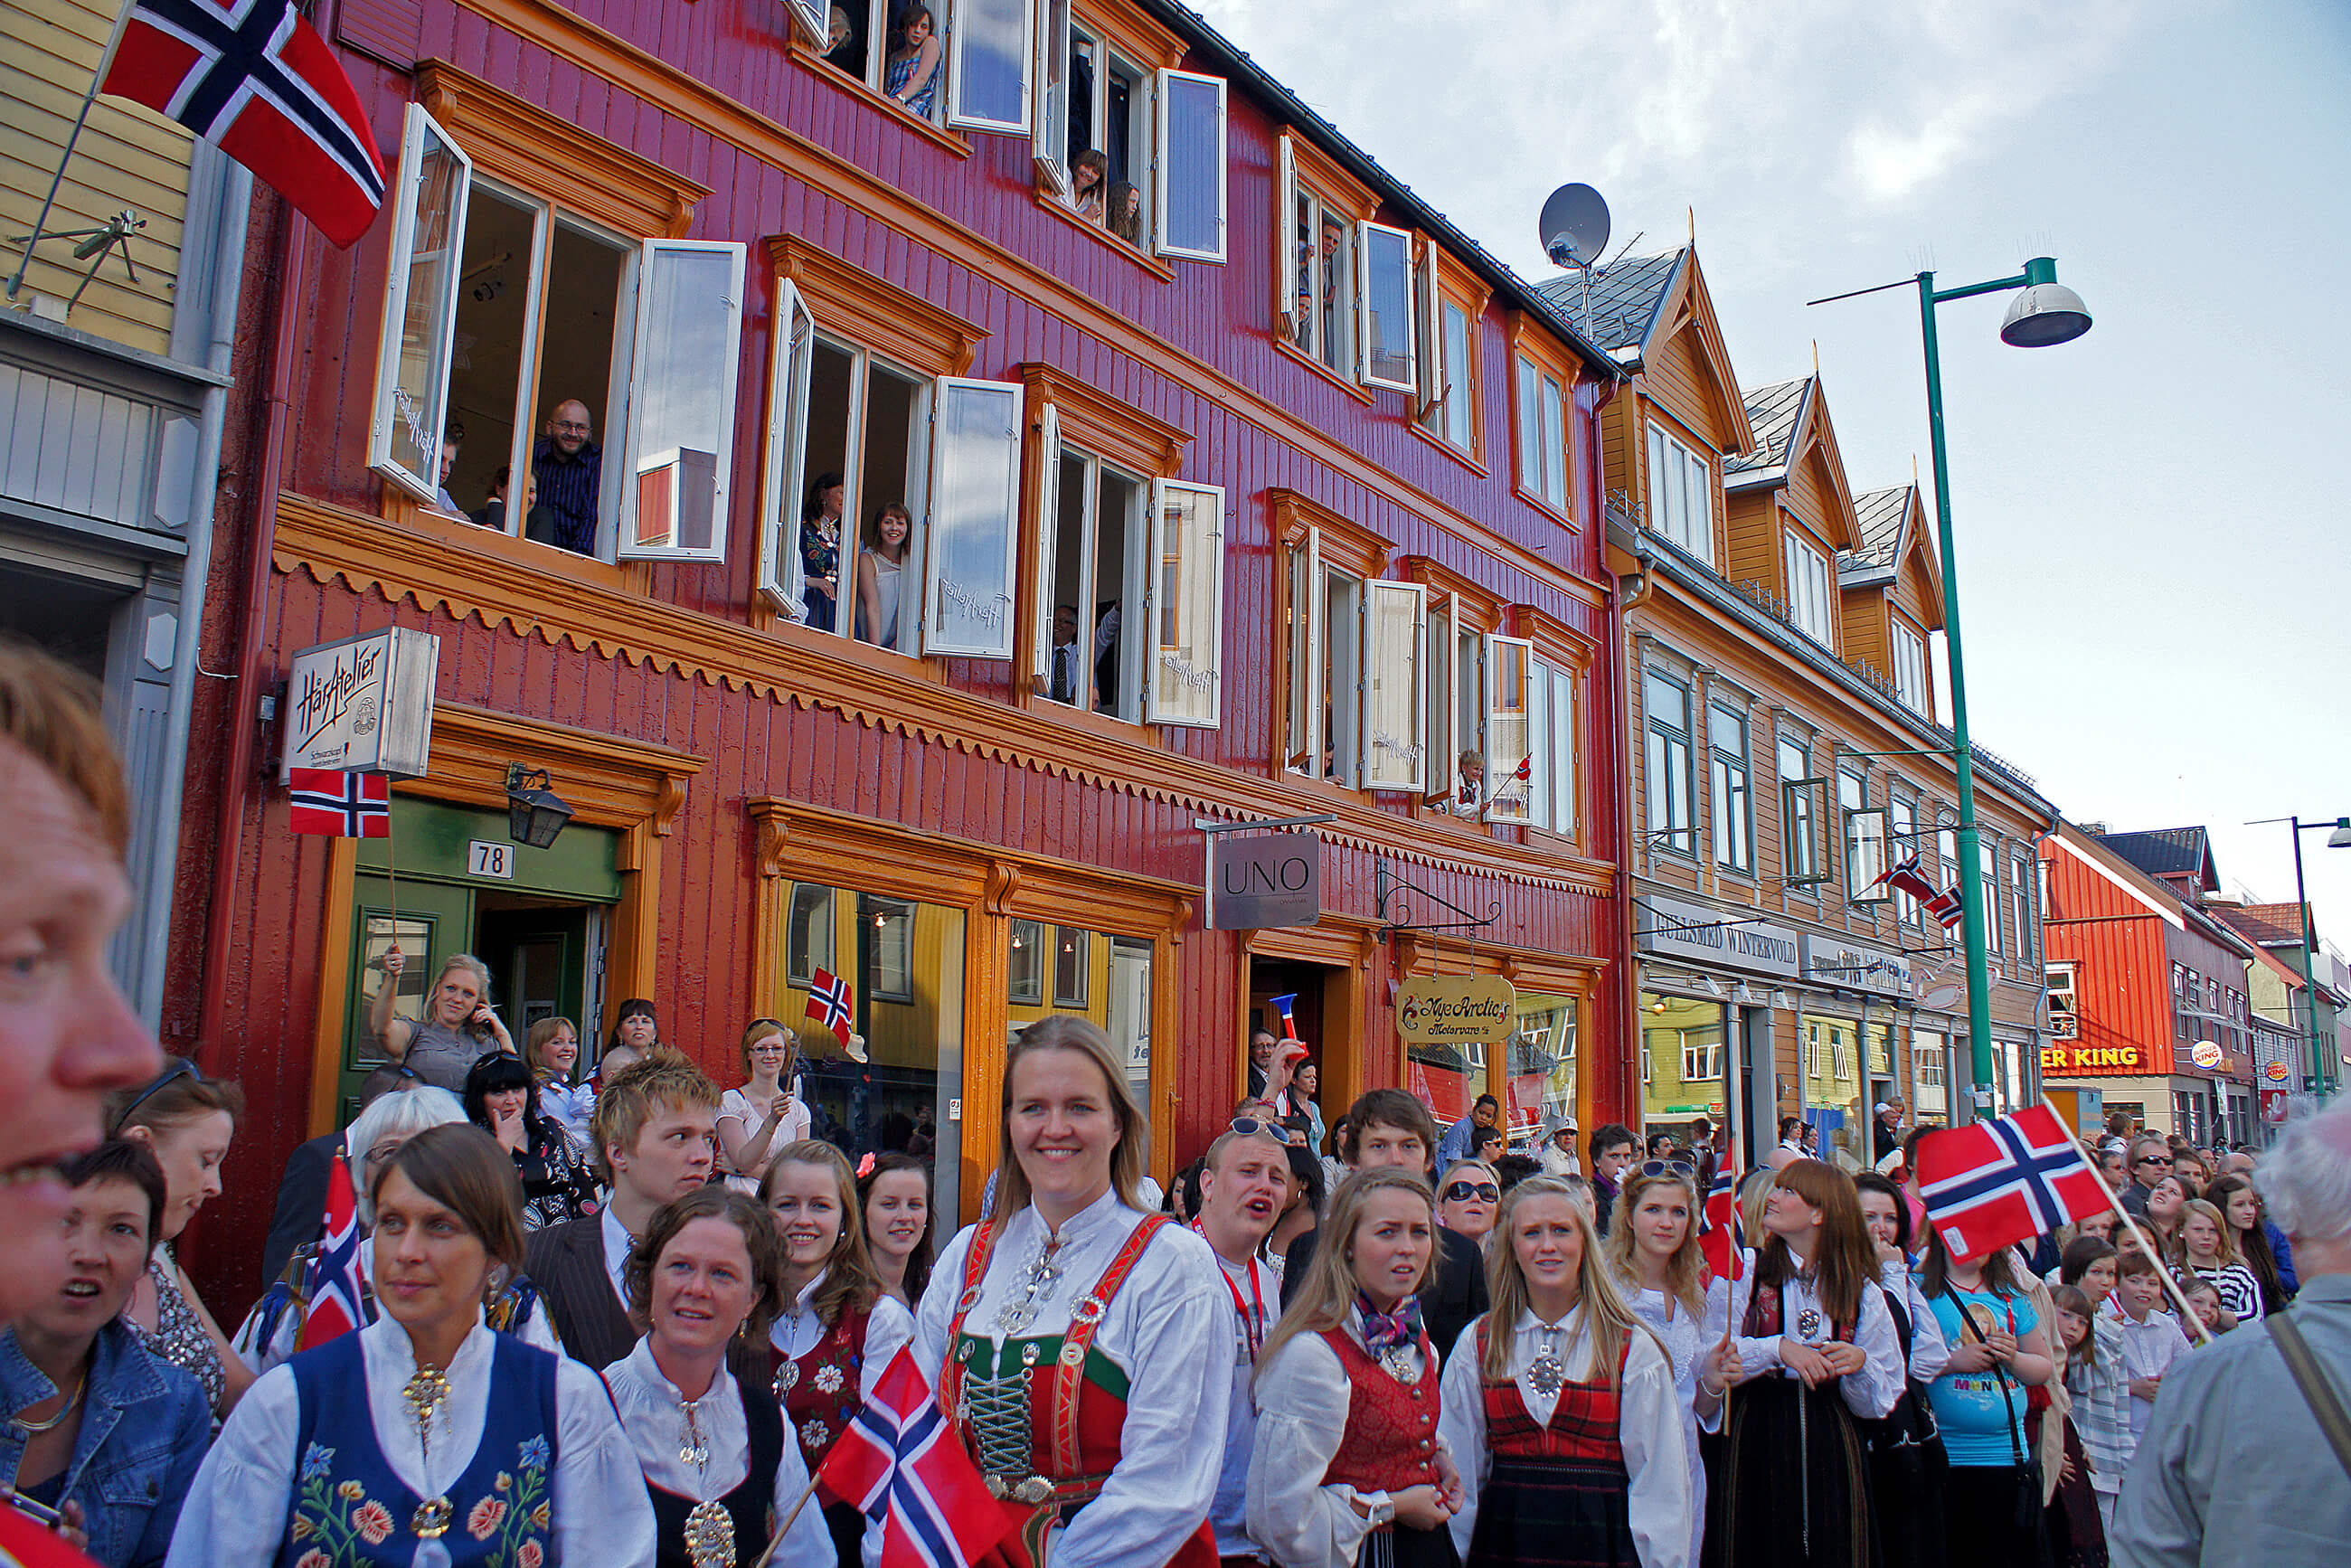 https://bubo.sk/uploads/galleries/5043/celebrating-17th-of-may-tromso-norway-hgr-64189--photo_photo_competition.jpg